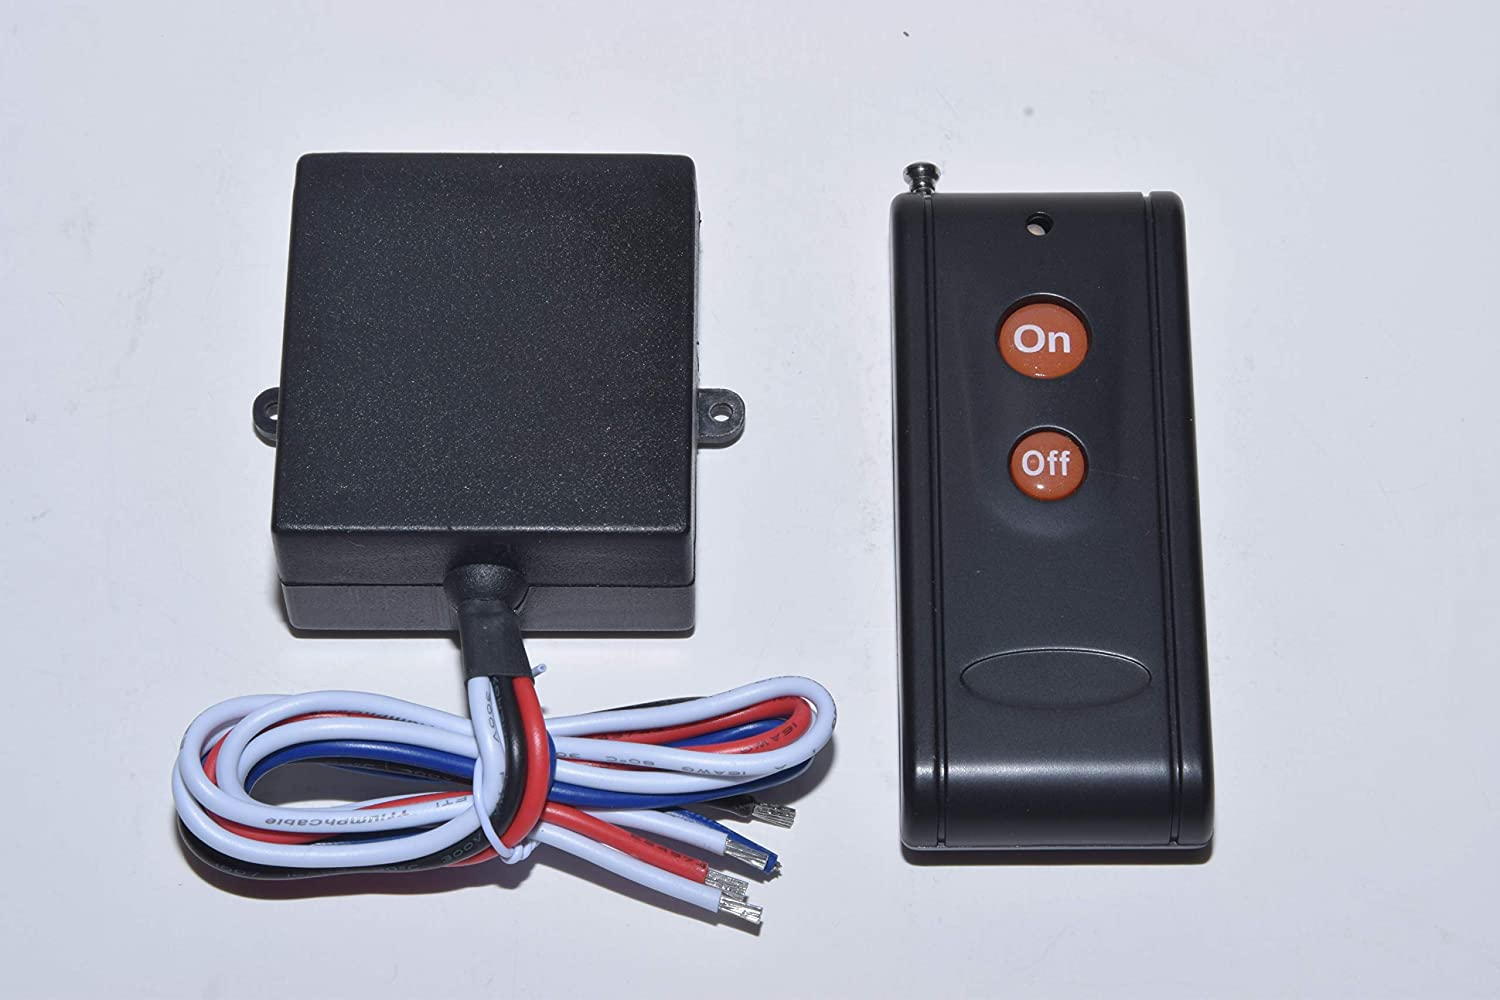 Msd 12v Dc Dry Contact On Off Relay Switch With Long Range Remote Ac Power Infrared Proximity Sensor Control